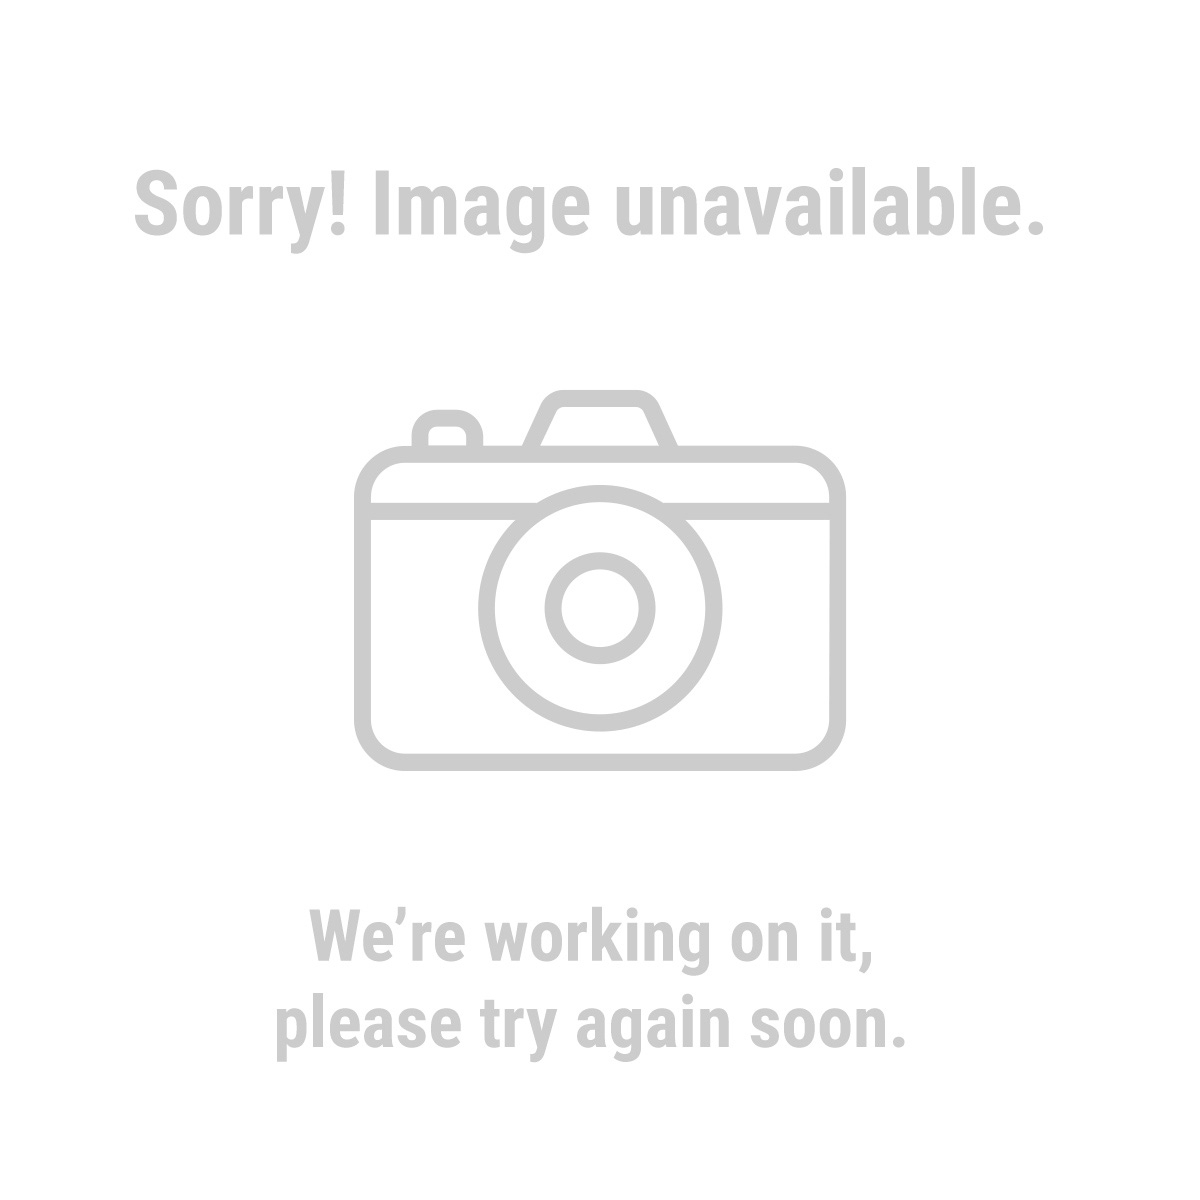 Lynxx 63289 40V Lithium Cordless String Trimmer